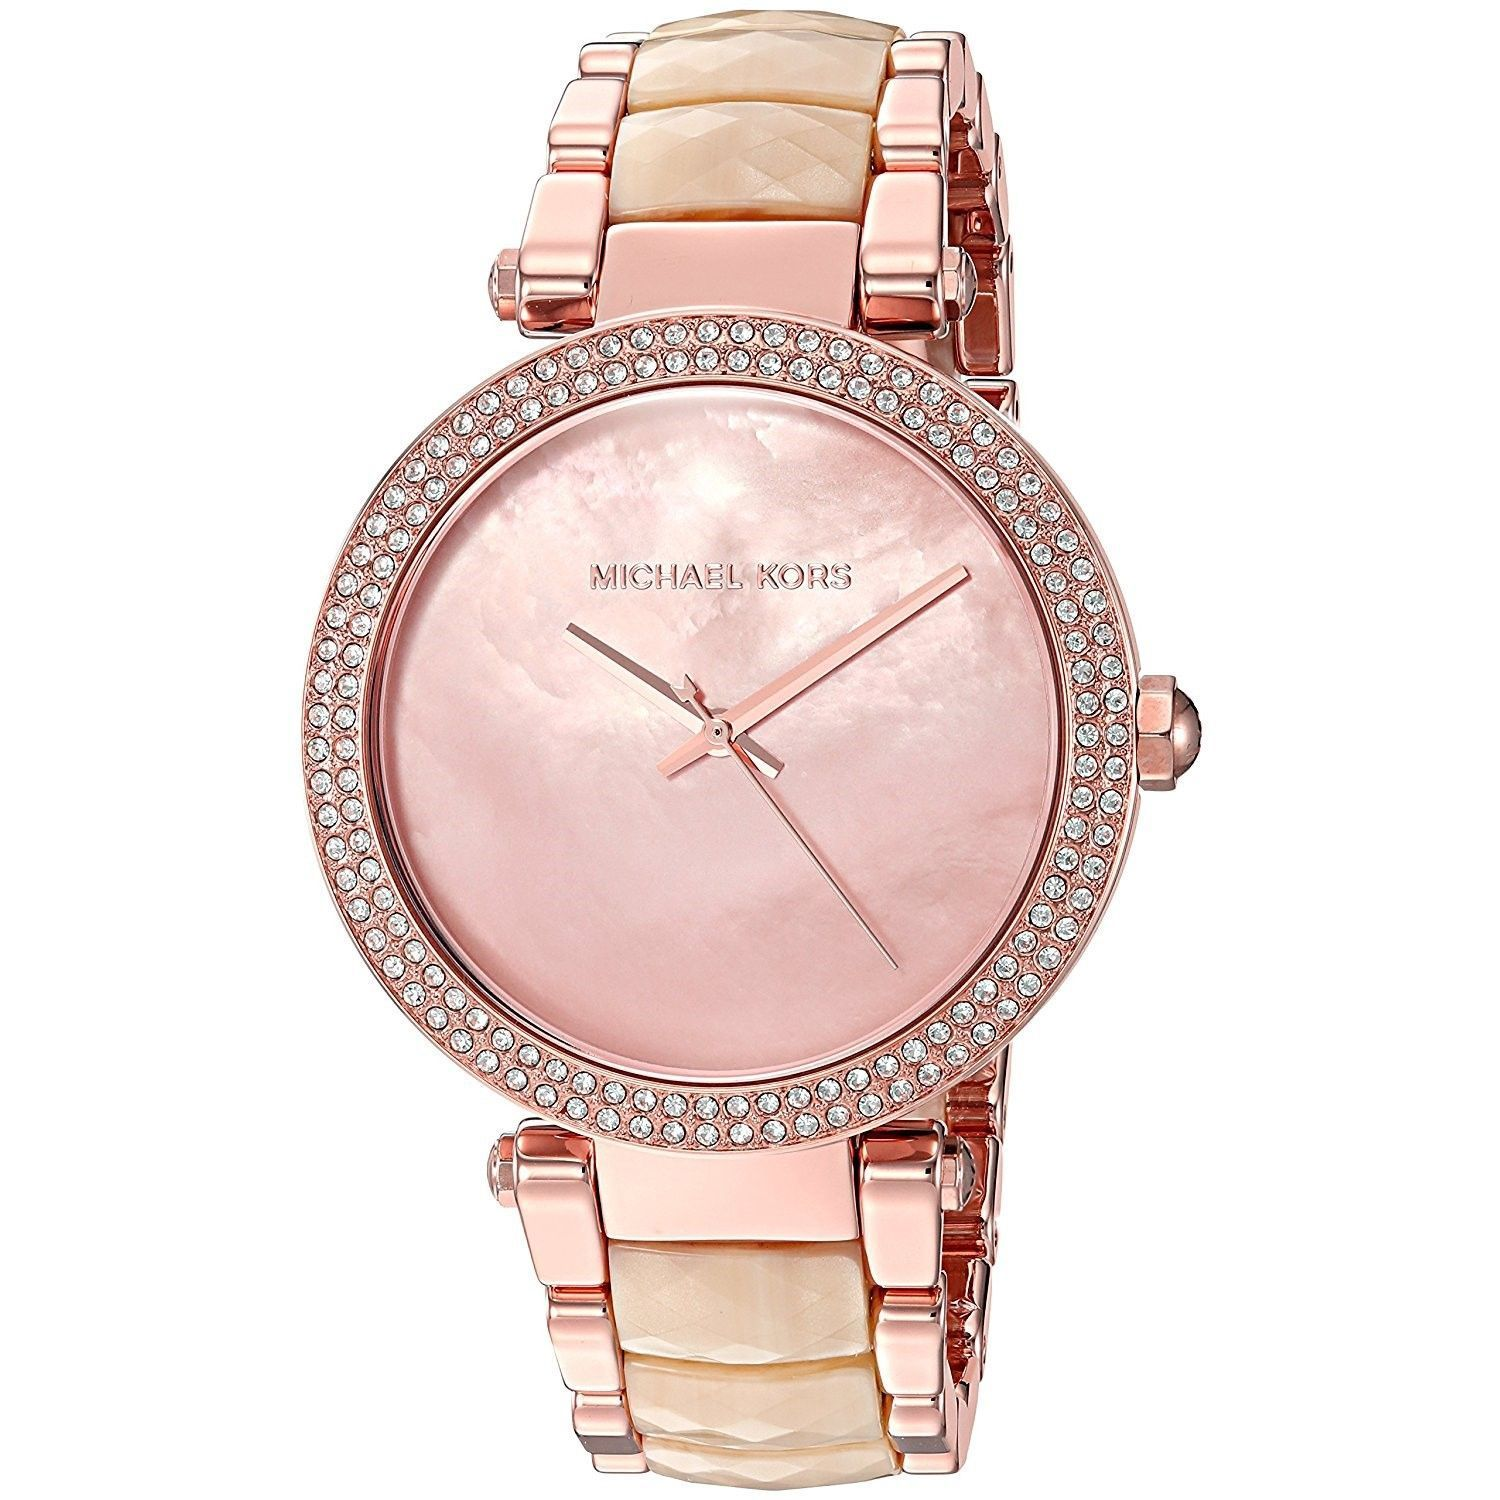 d00b9064c20d Shop Michael Kors Women s  Parker  Crystal Two-Tone Stainless steel and Acetate  Watch - Free Shipping Today - Overstock - 16099814